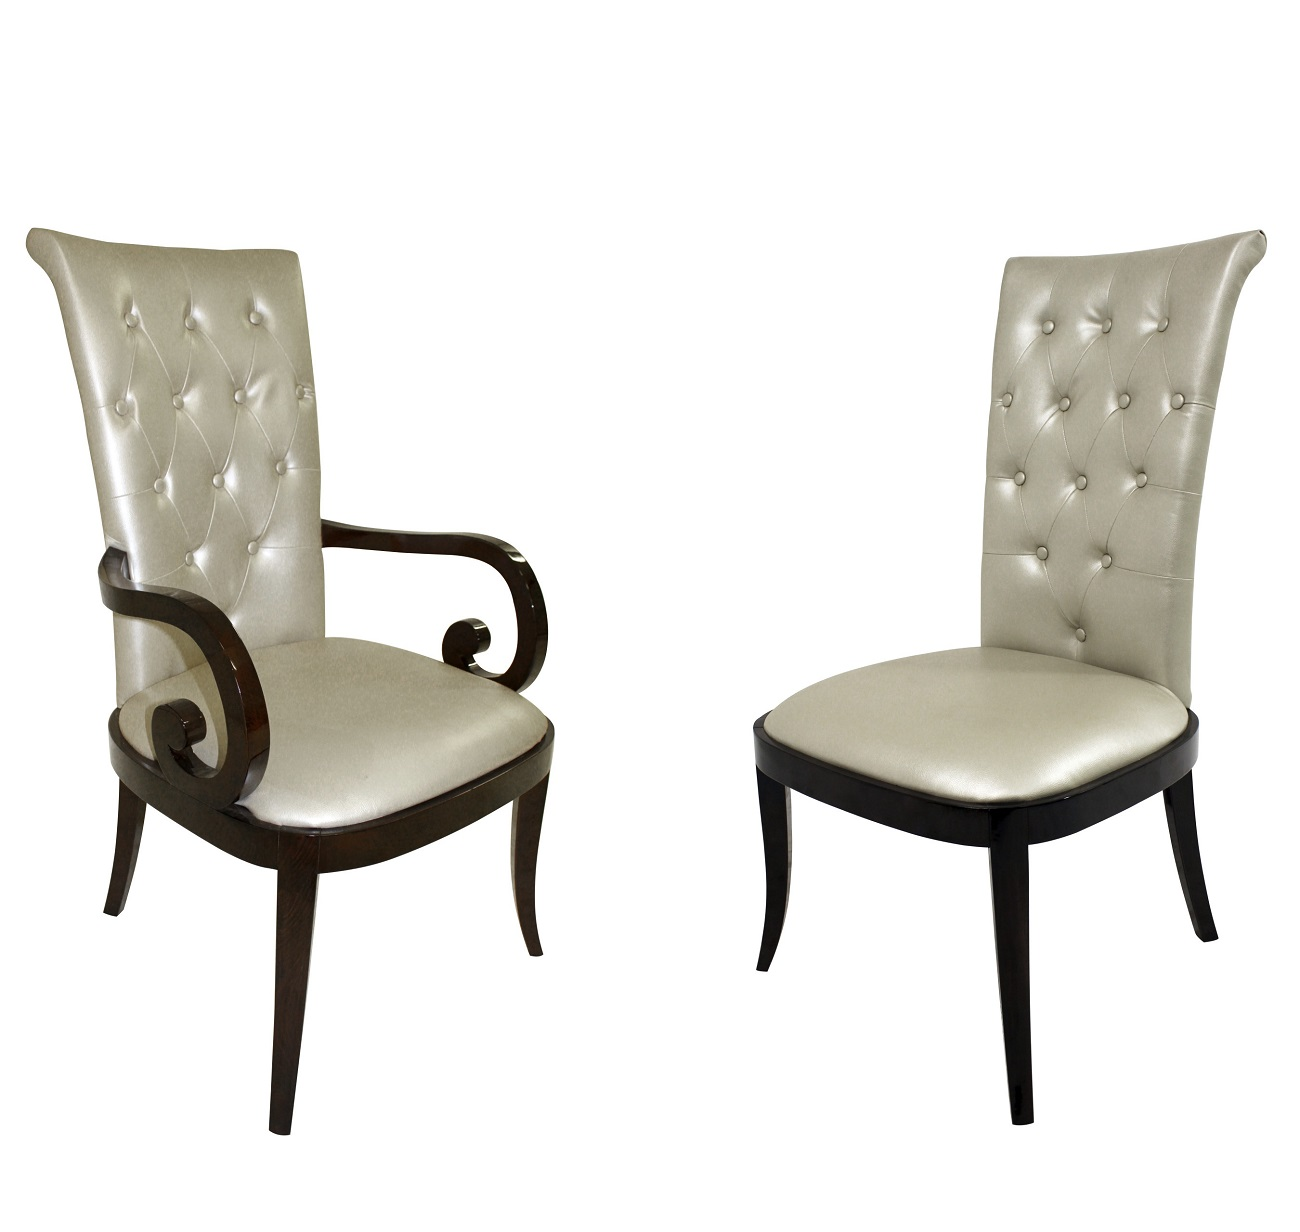 Ch 13015 Tufted Dining Chairs for Sale Brooklyn - Accentuations Brand